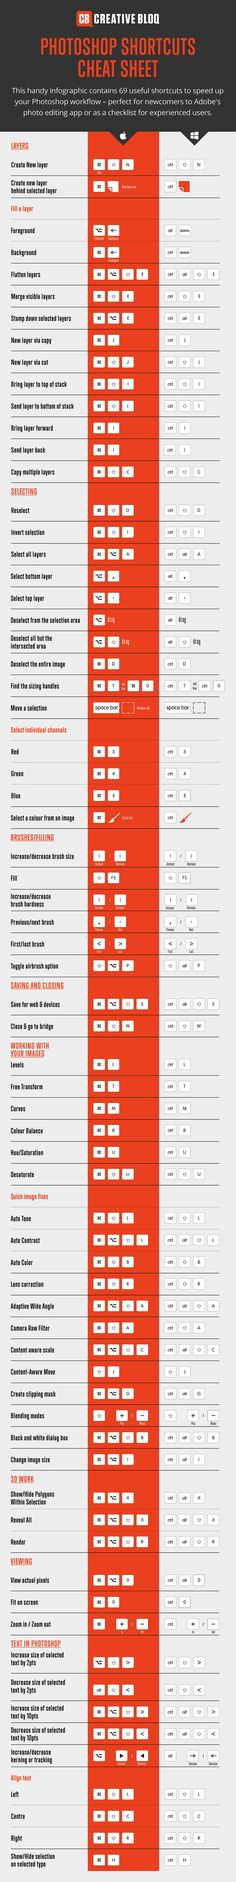 Infographic: 69 incredibly useful Photoshop shortcuts | Creative Bloq